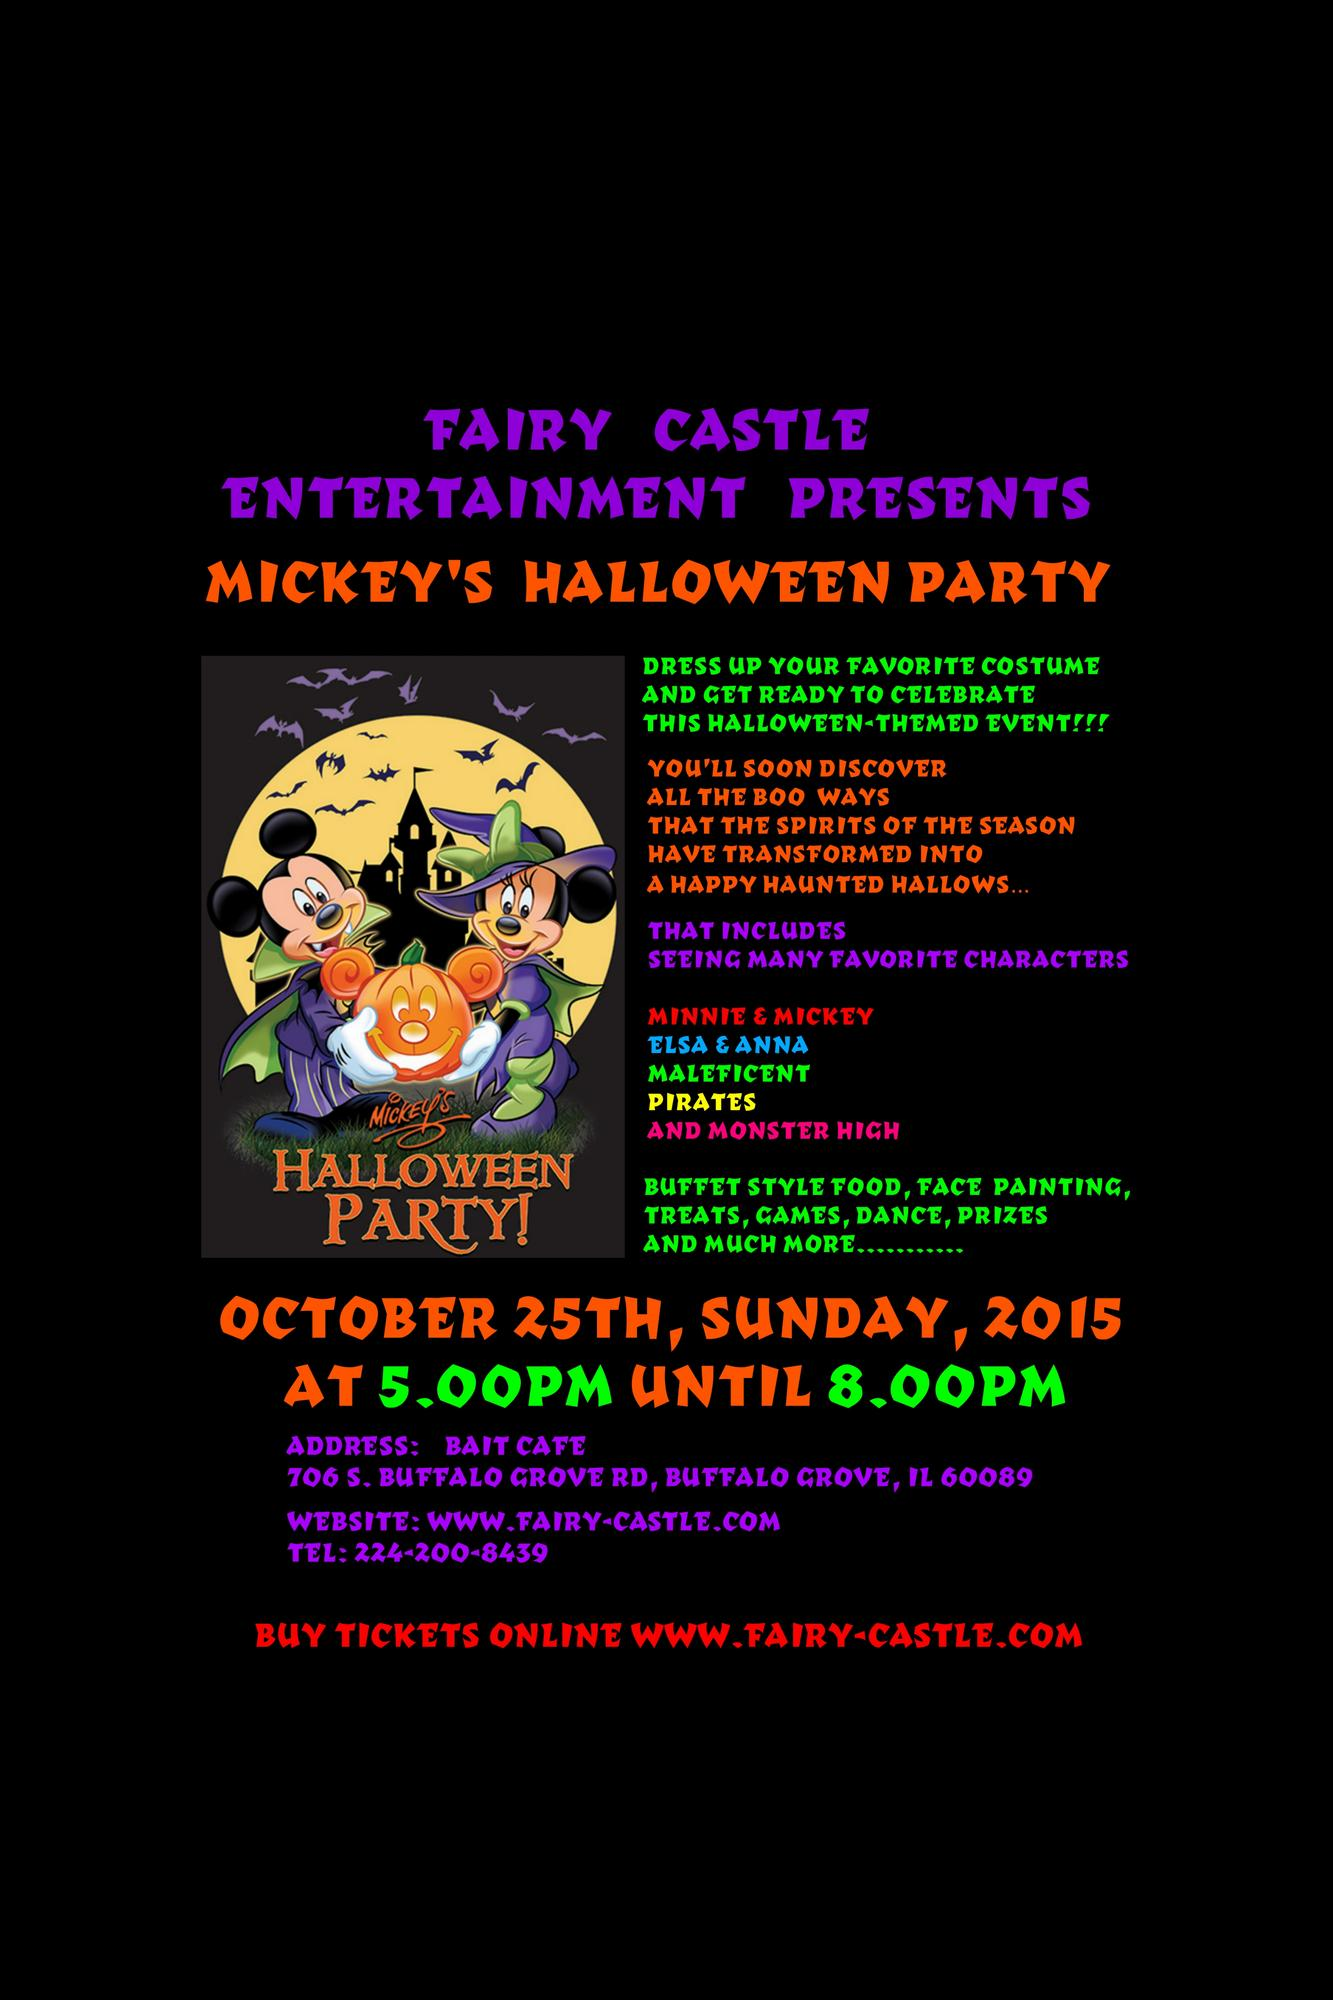 Mickey's Halloween Party Tickets in Buffalo Grove, IL, United States